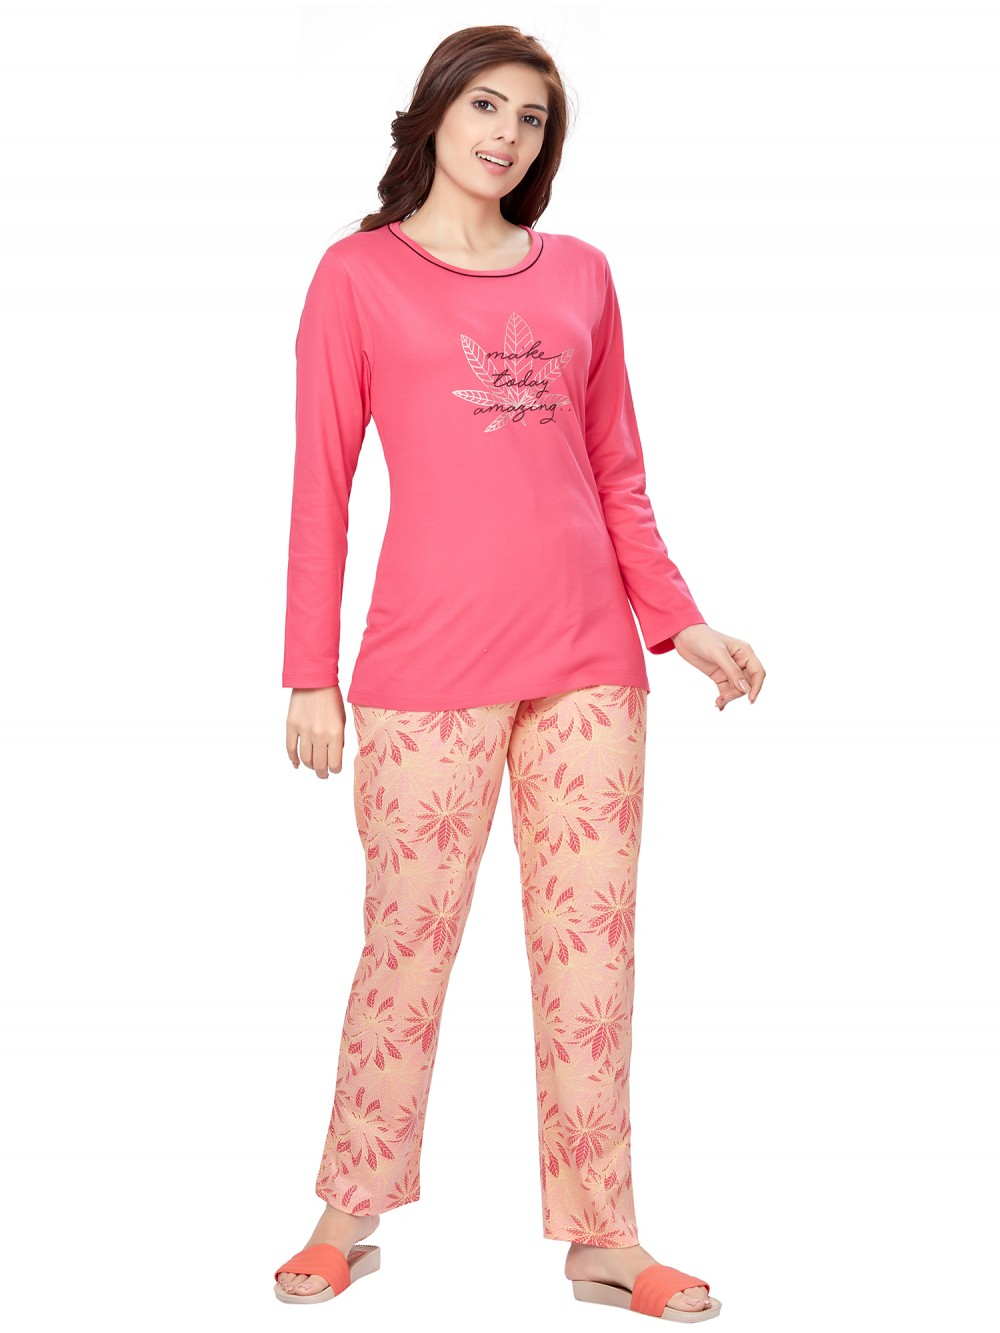 Women Night Wears for Light Color T-Shirt Pyjama with Smoother Stretchable